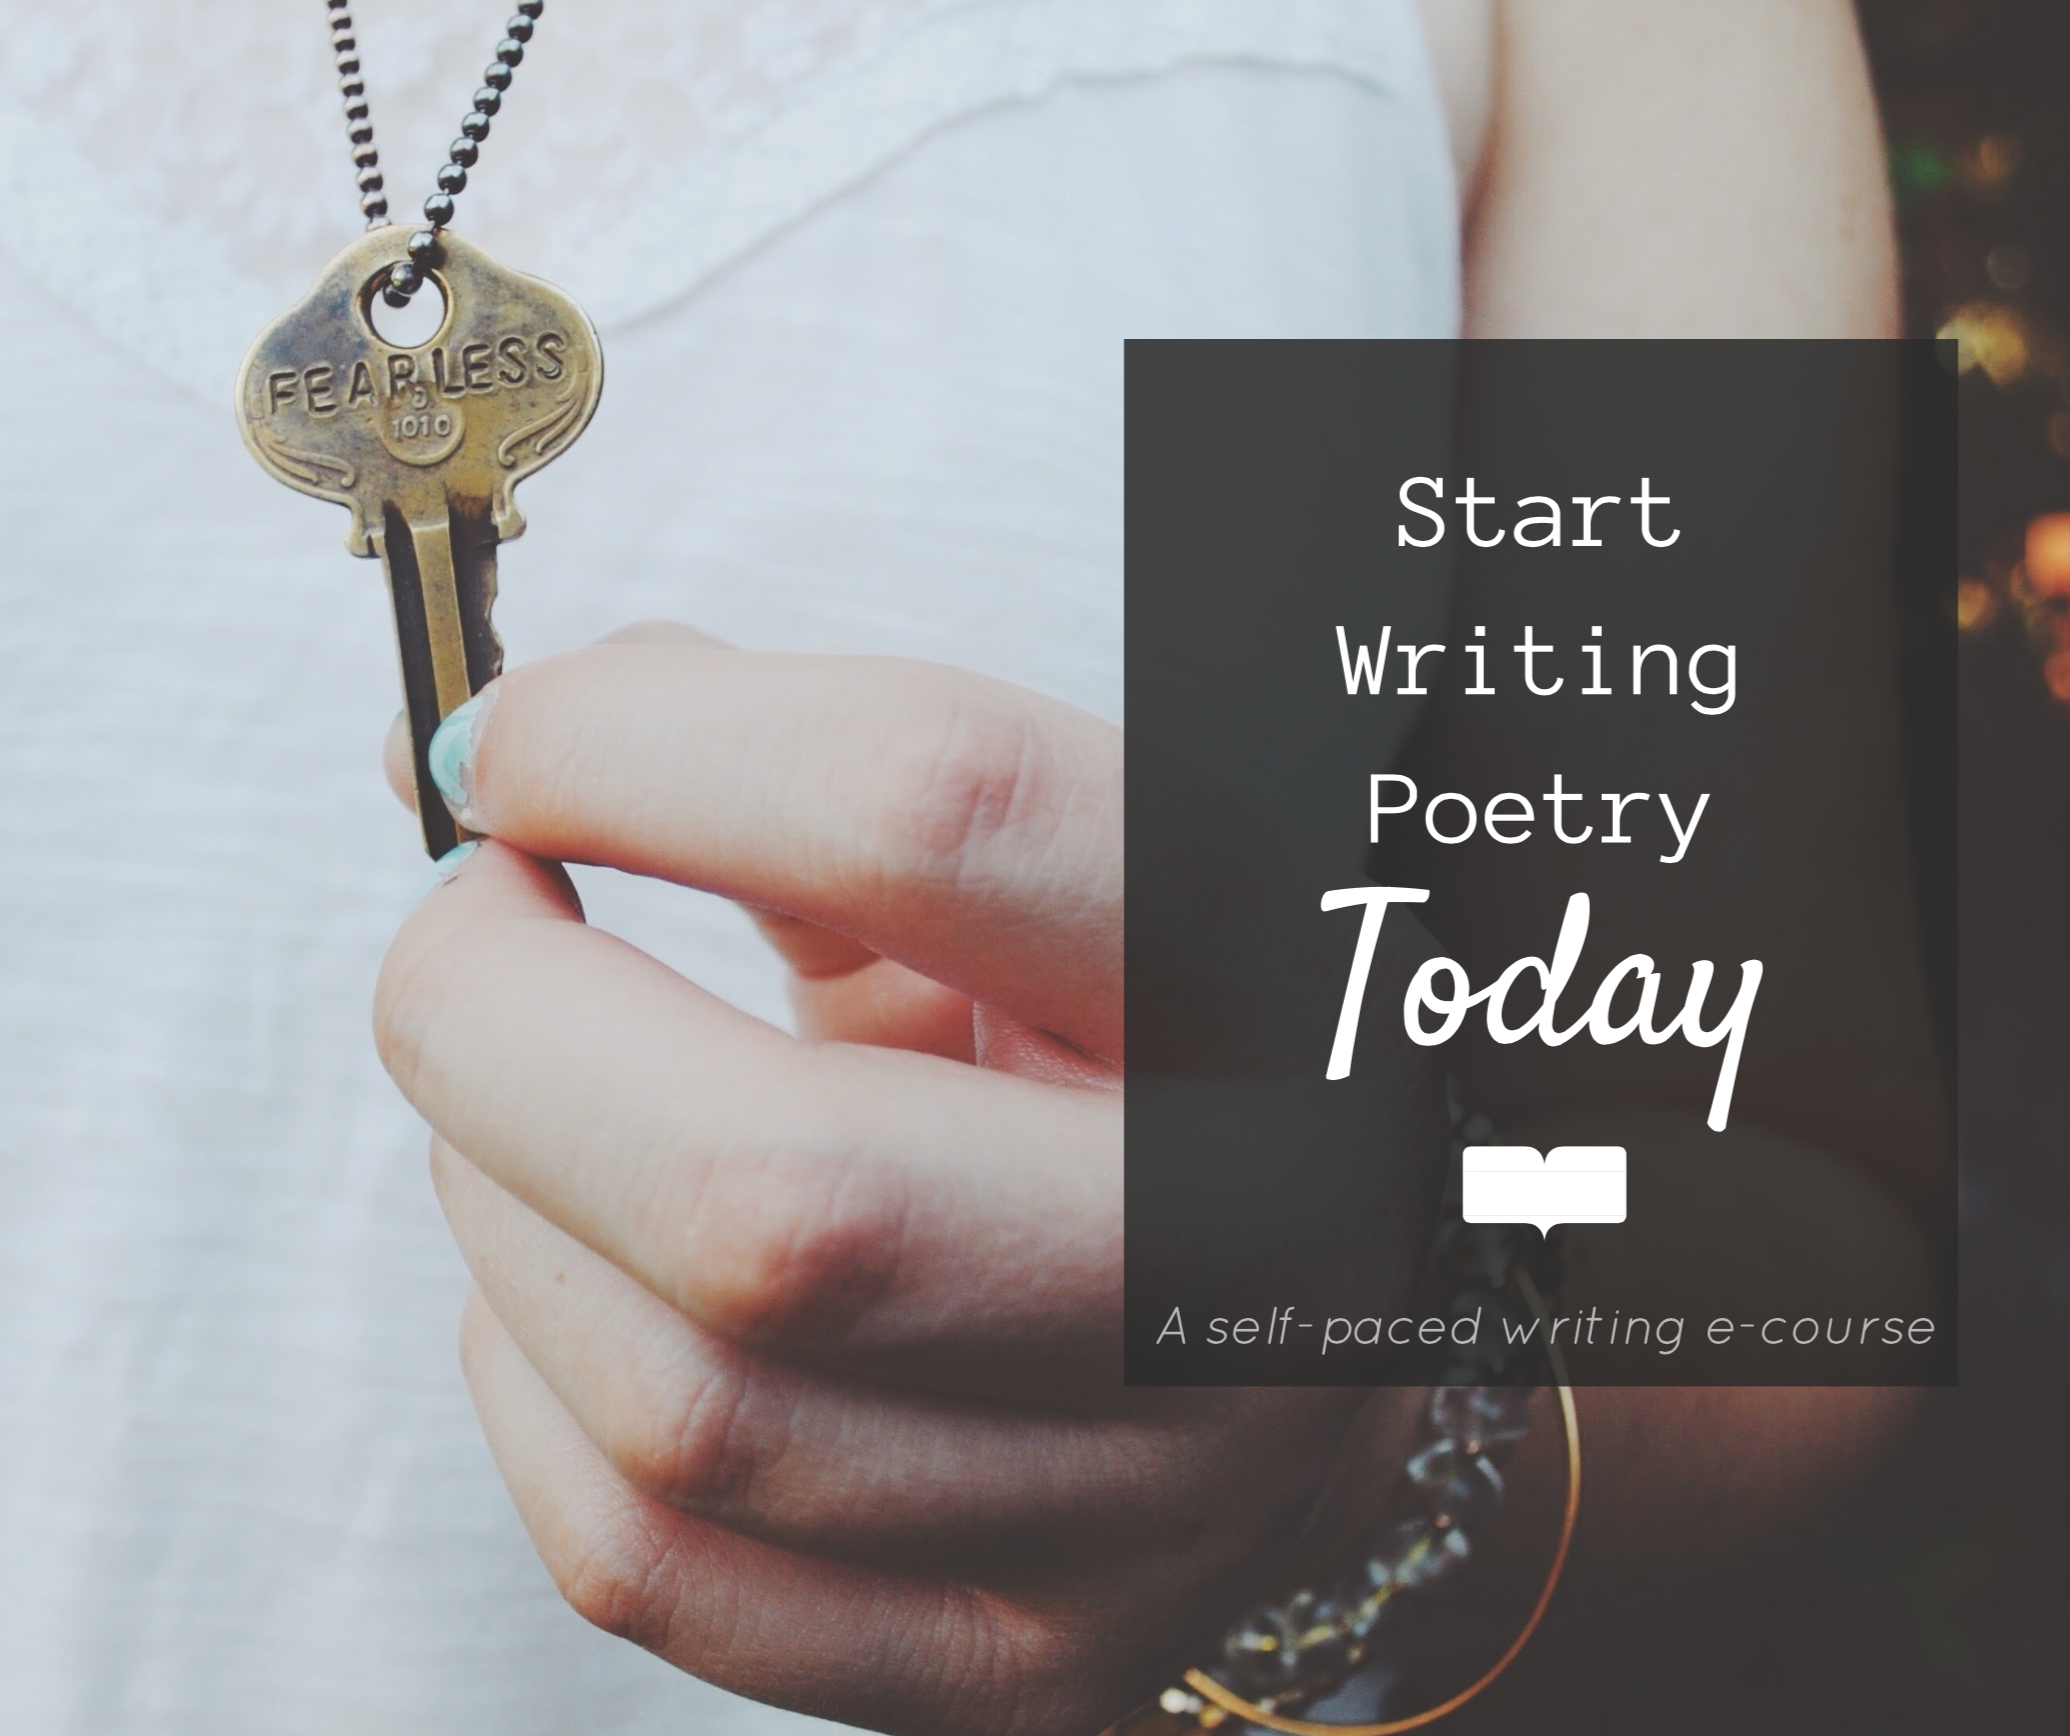 Start Writing Poetry Today